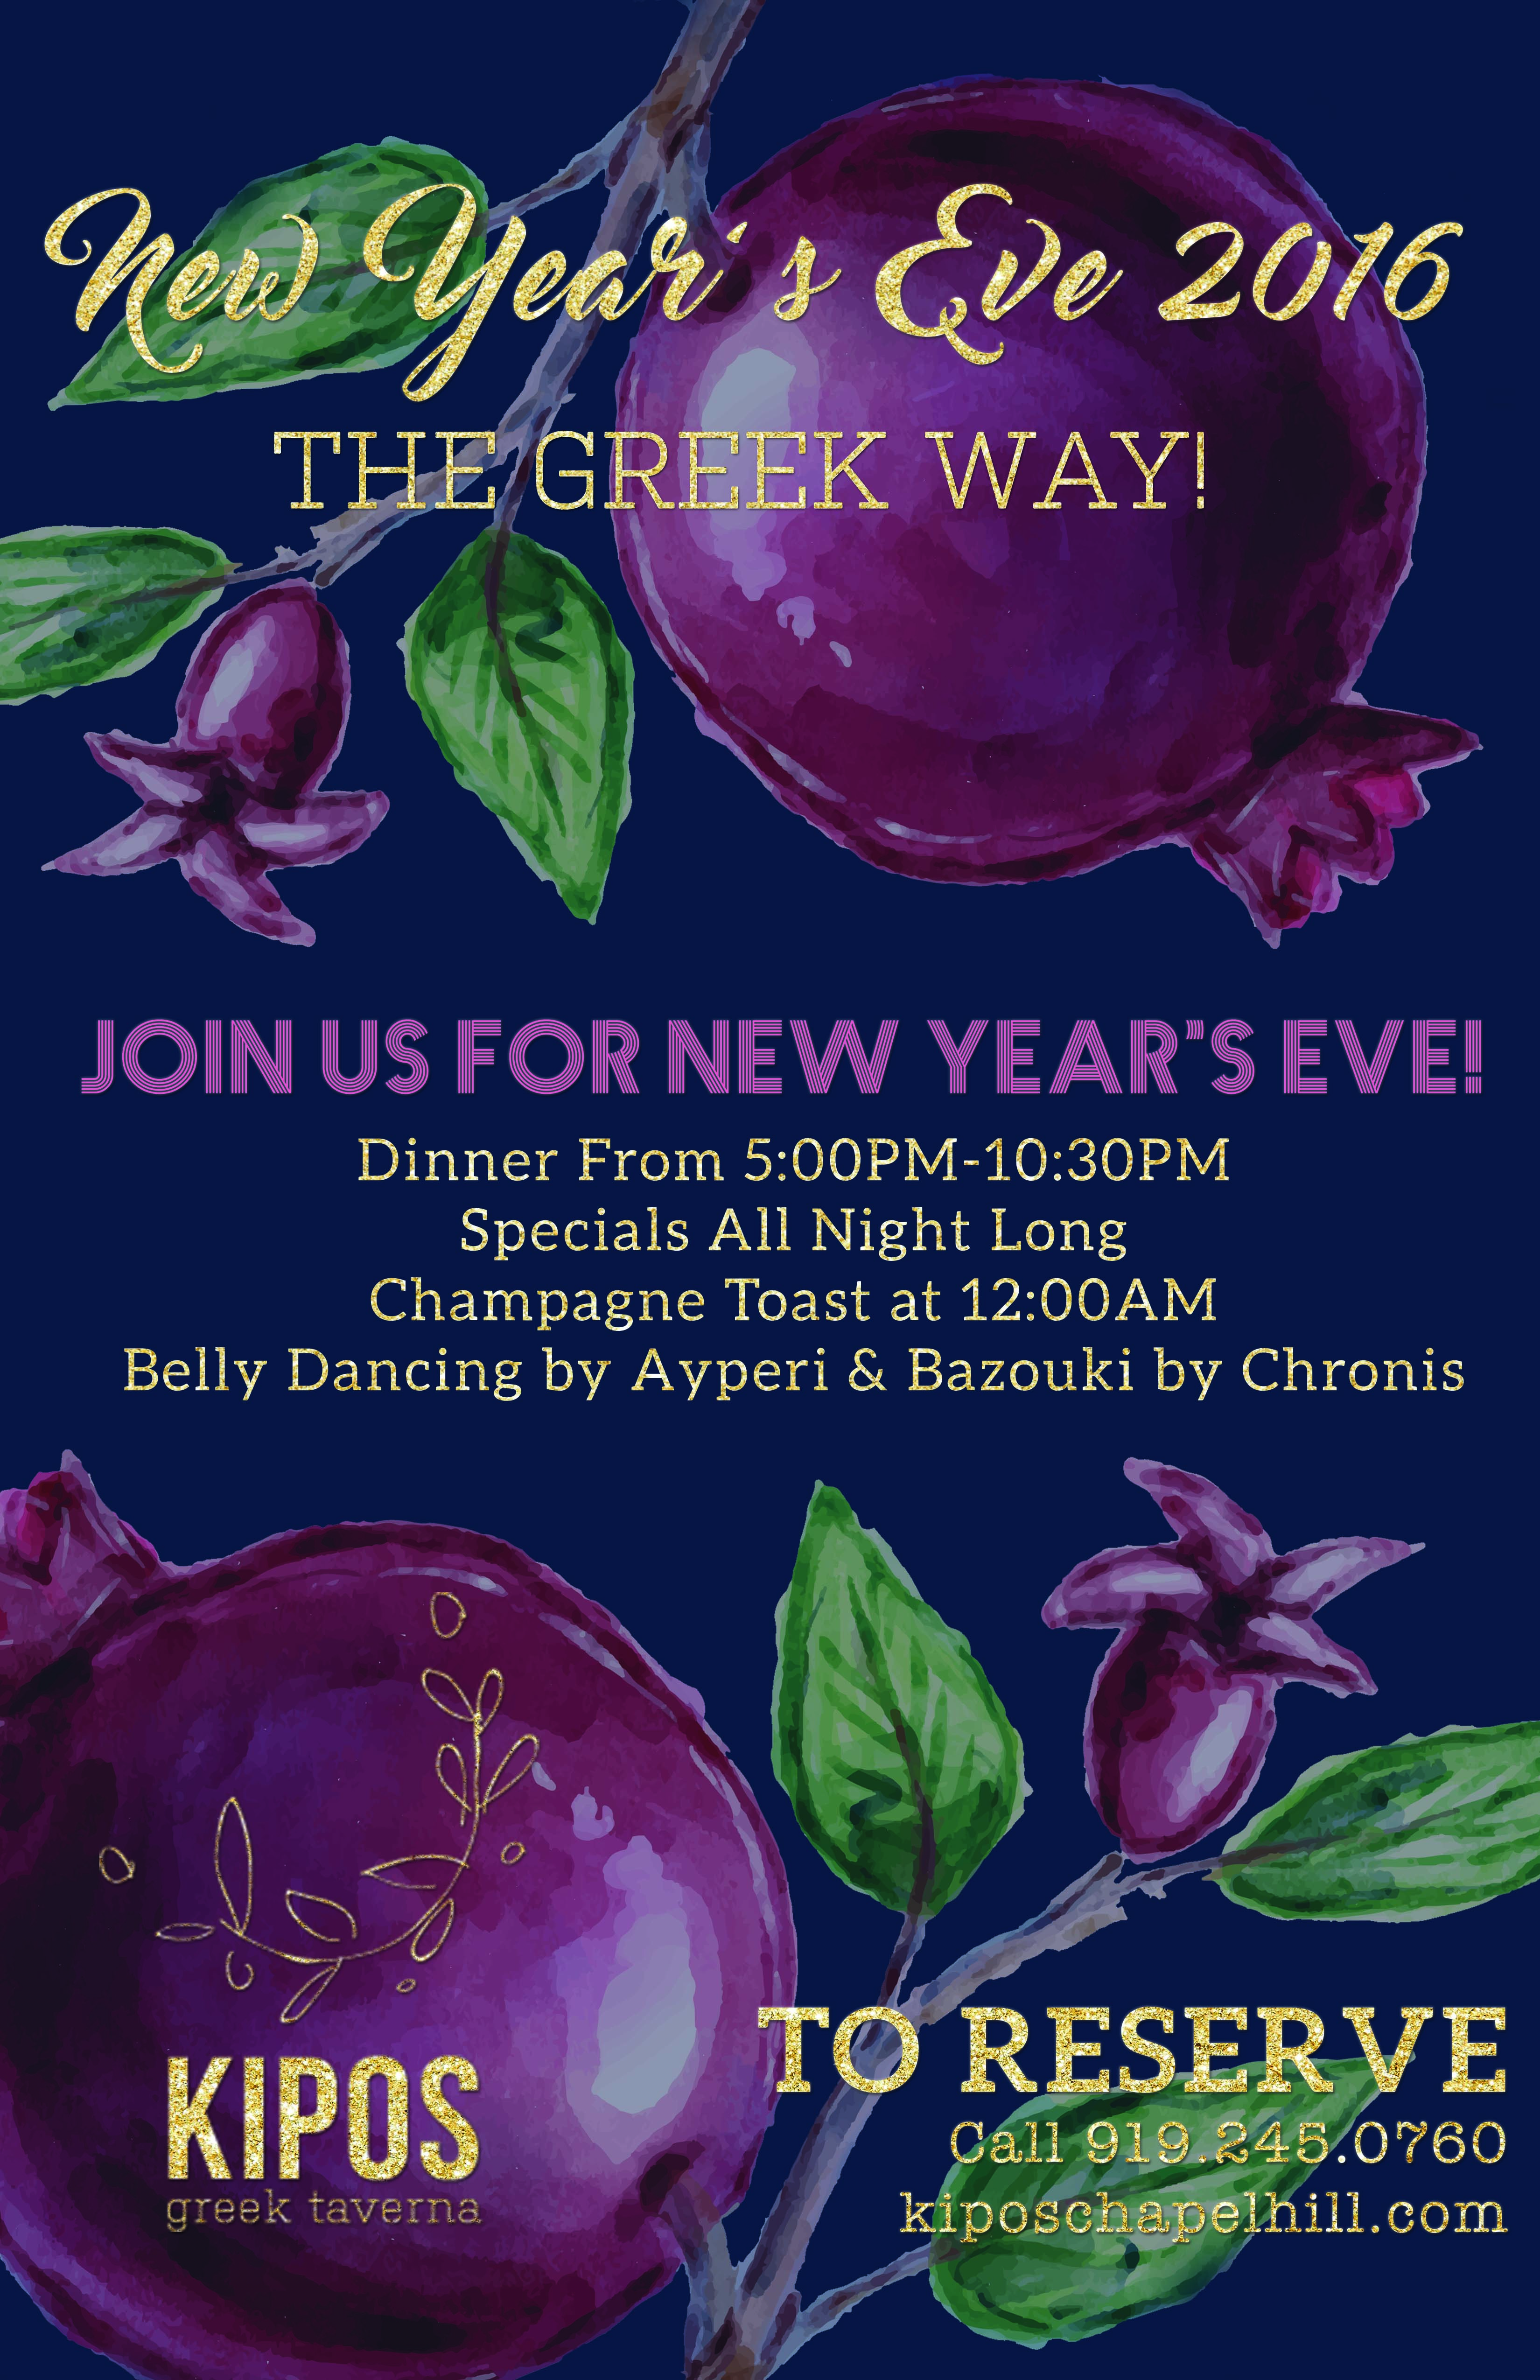 NEW YEAR'S EVE THE GREEK WAY! - Chapelboro.com